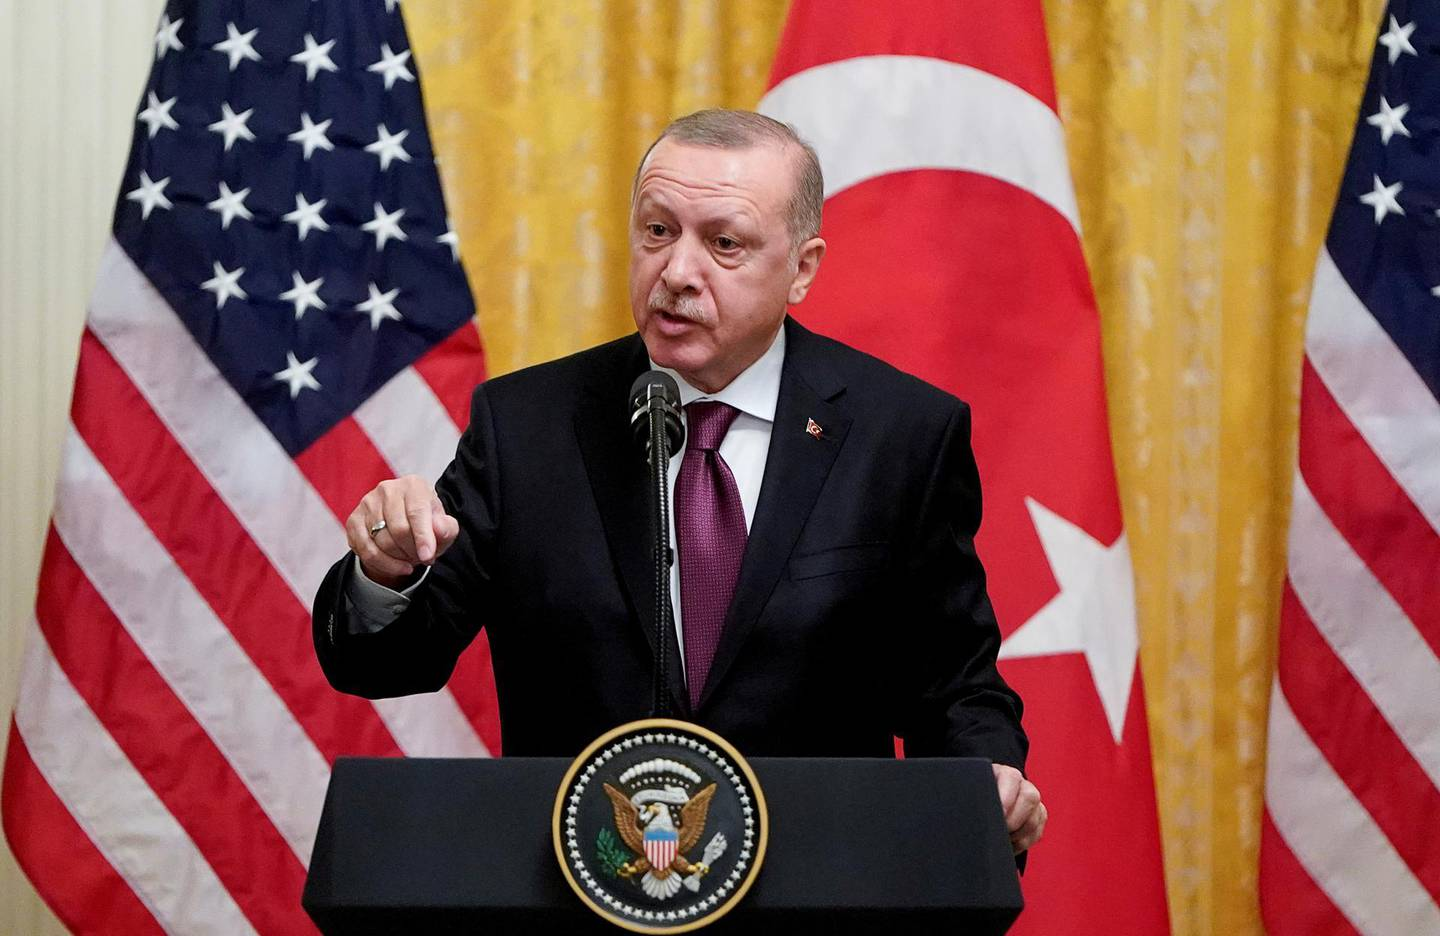 FILE PHOTO: Turkish President Tayyip Erdogan answers questions during a joint news conference with U.S. President Donald Trump at the White House in Washington, U.S., November 13, 2019. REUTERS/Joshua Roberts/File Photo